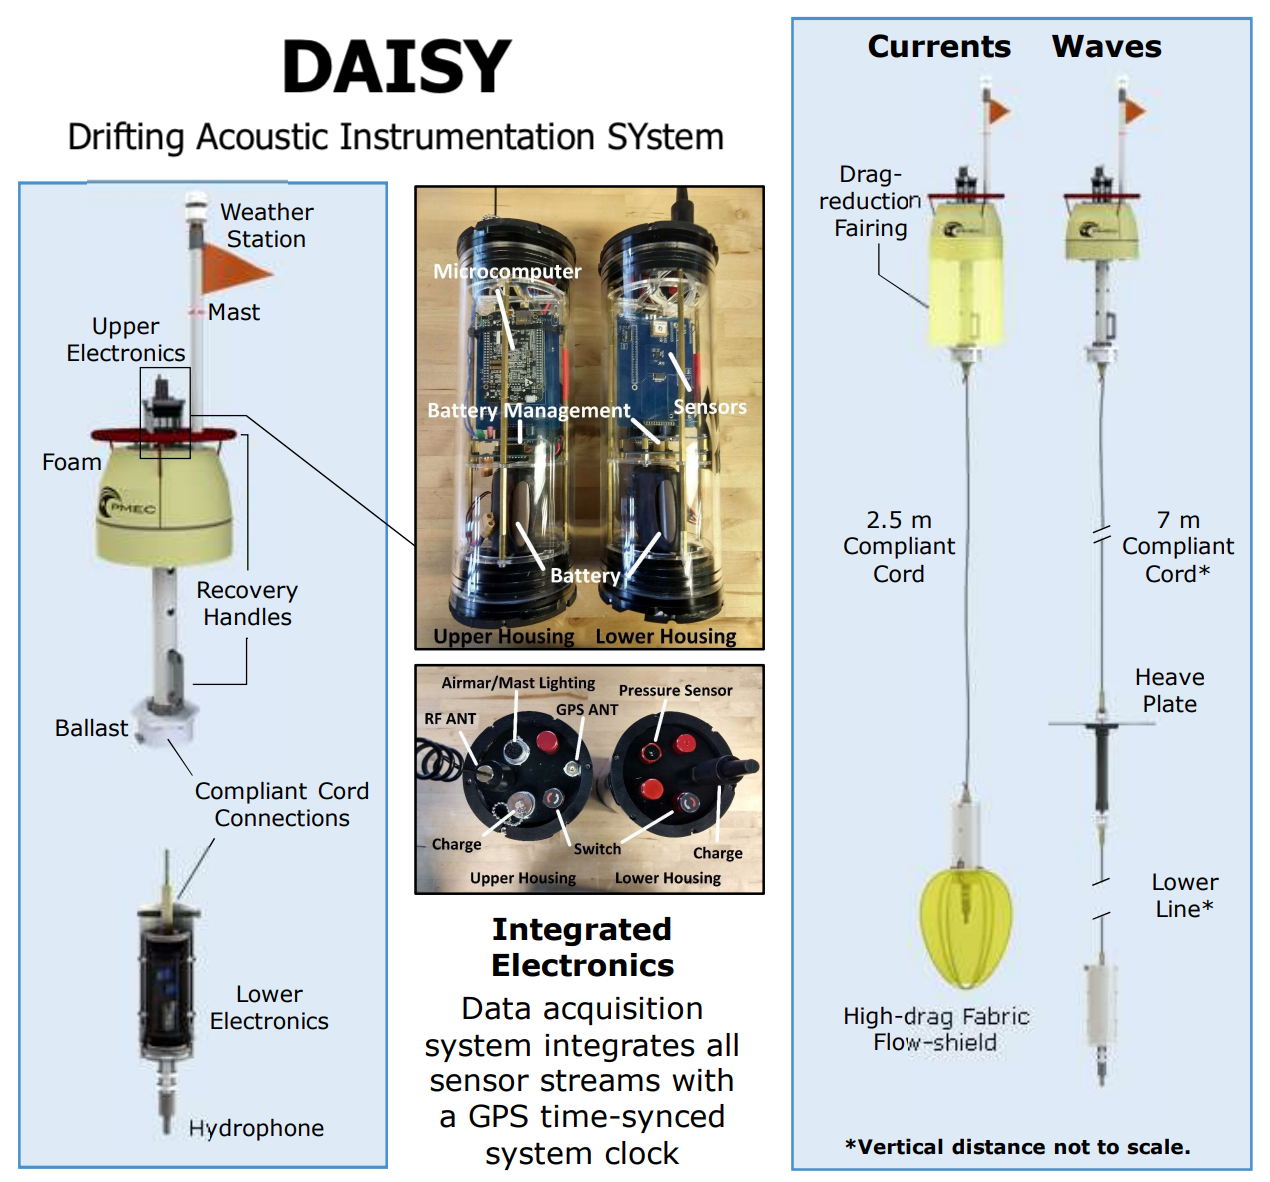 PMEC DAISY instrumentation designs for acoustic characterization at marine energy sites.